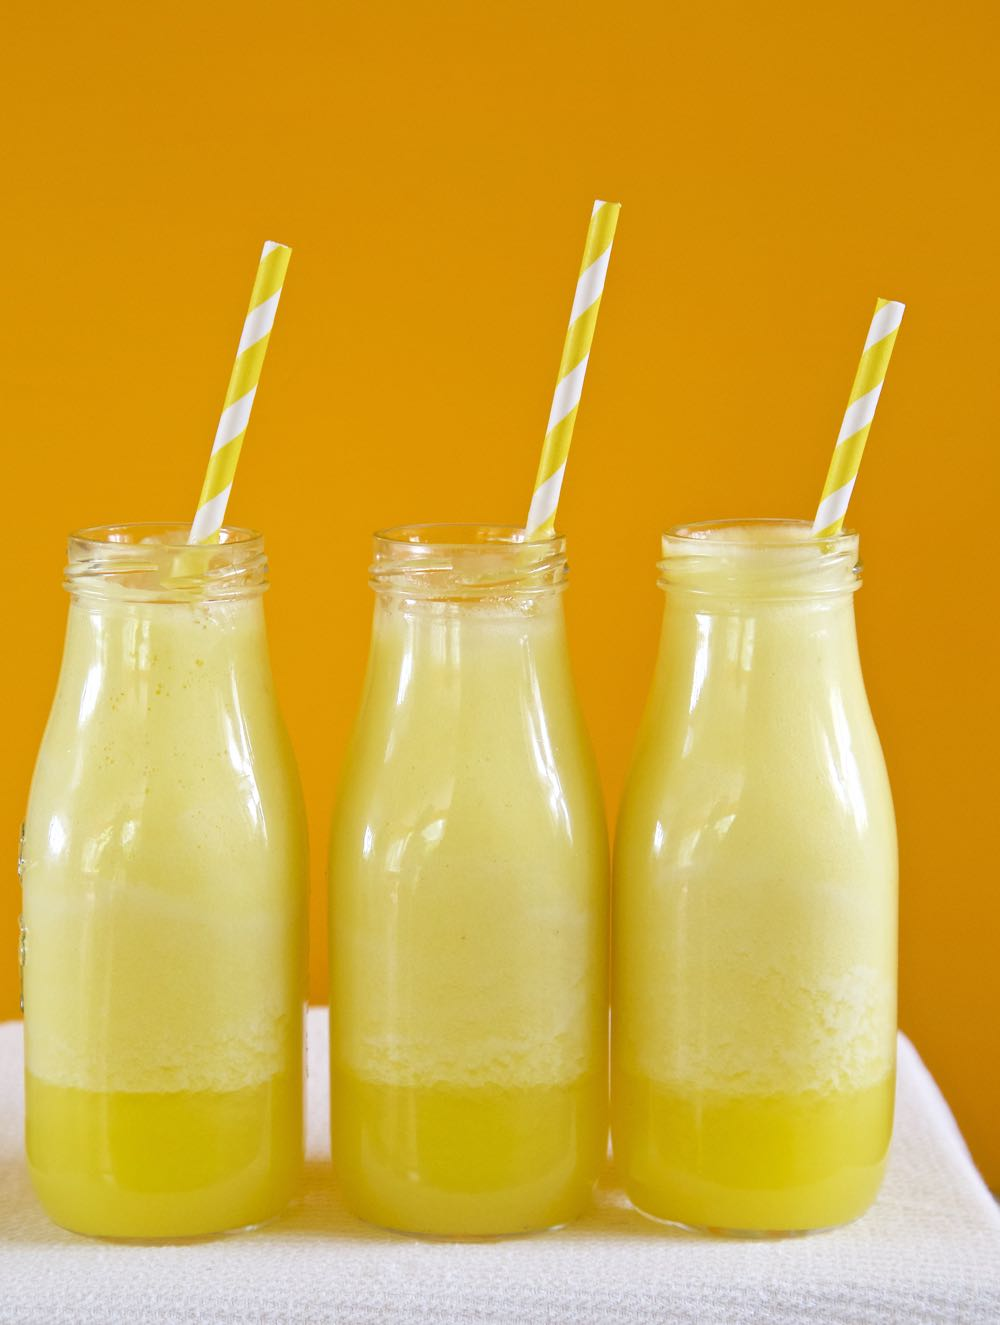 Easy Pineapple Smoothie Recipe - you won't believe how simple this smoothie is to make!